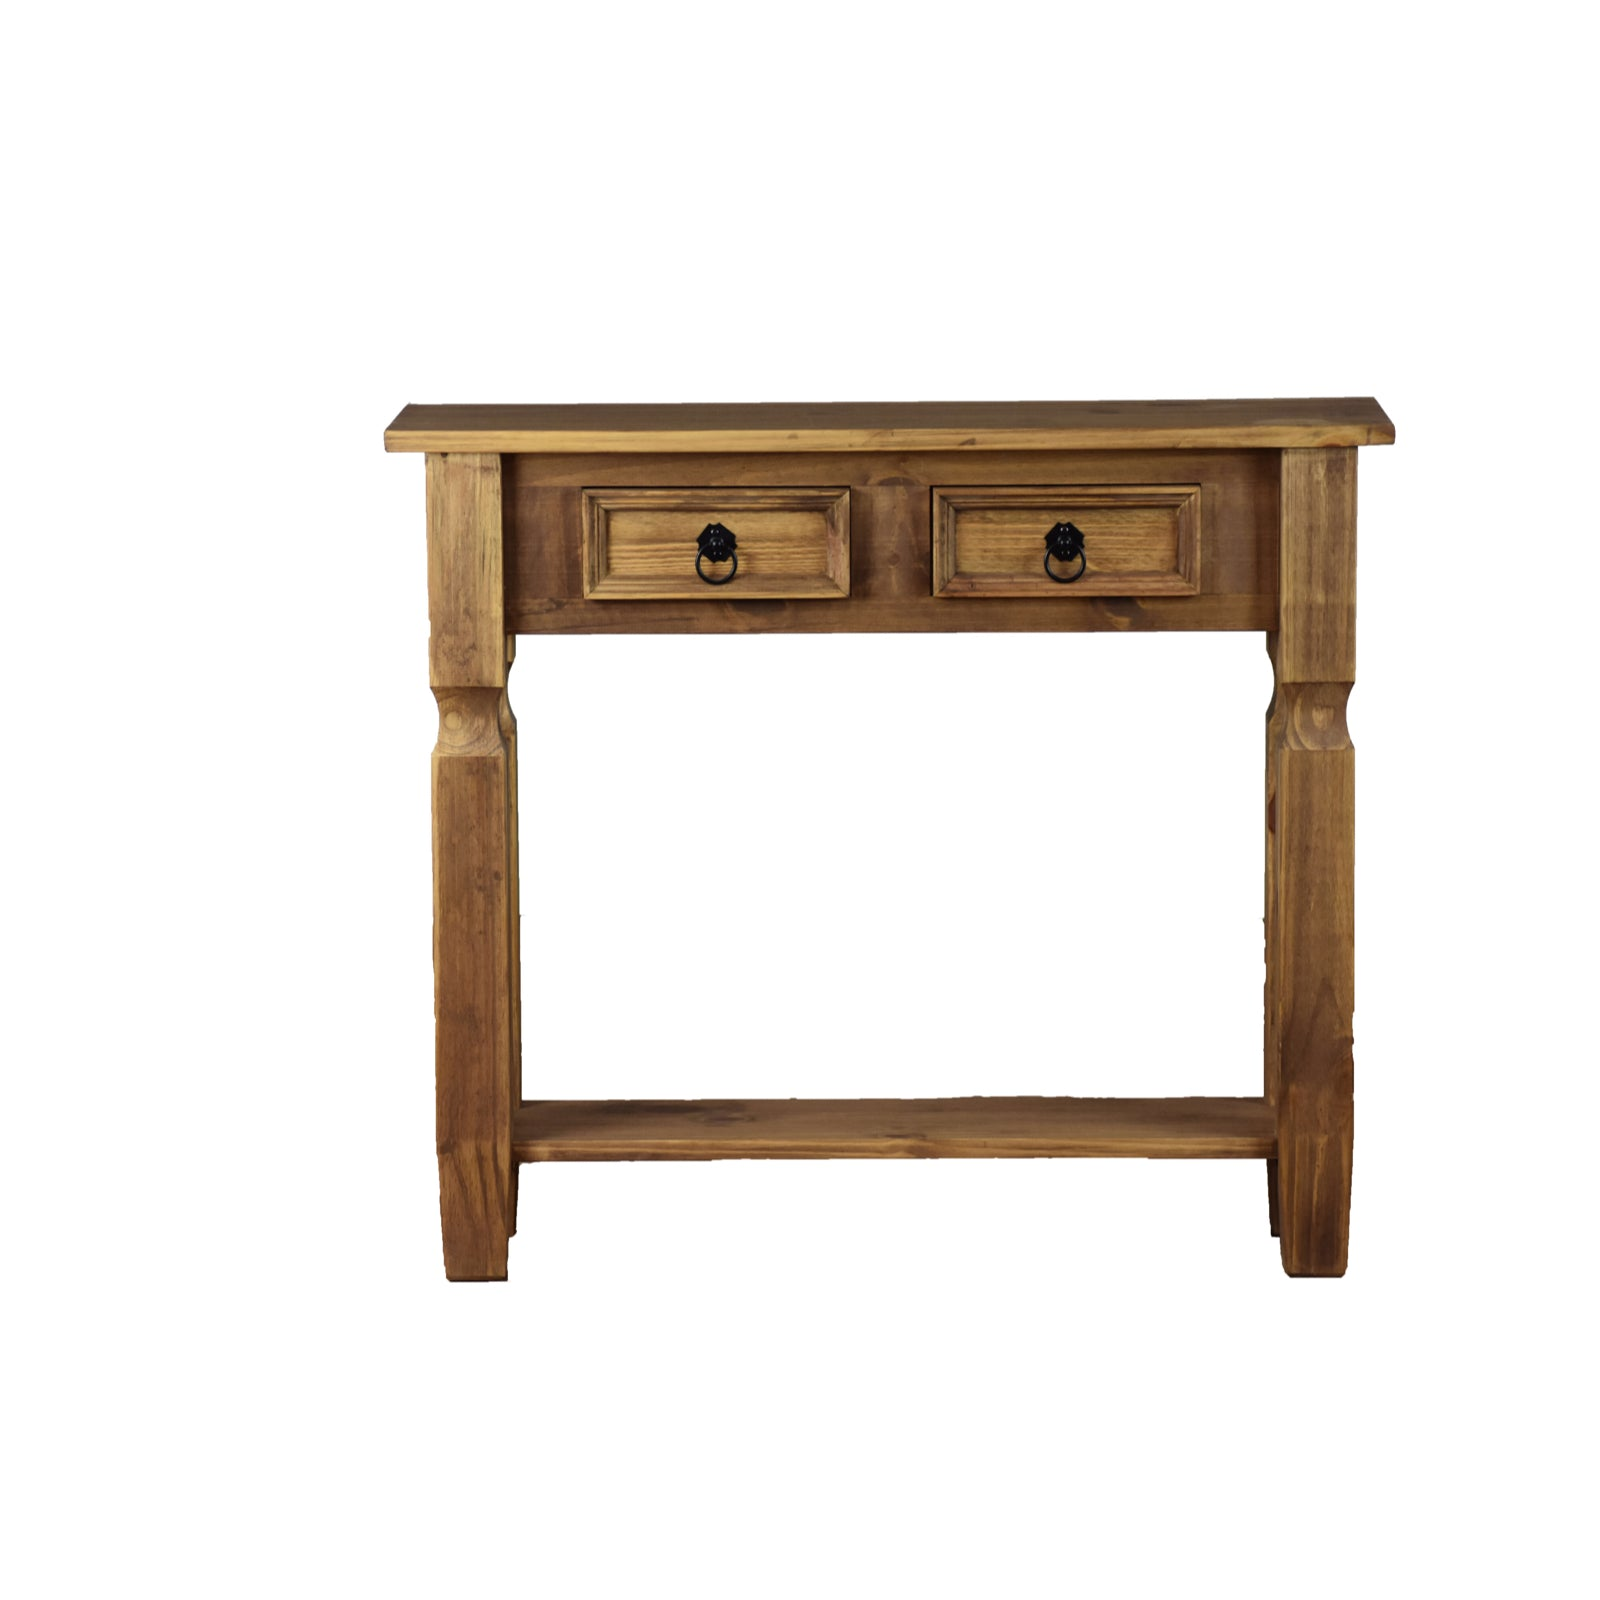 reclaimed wood console table, online sale, reclaimed wood furniture,